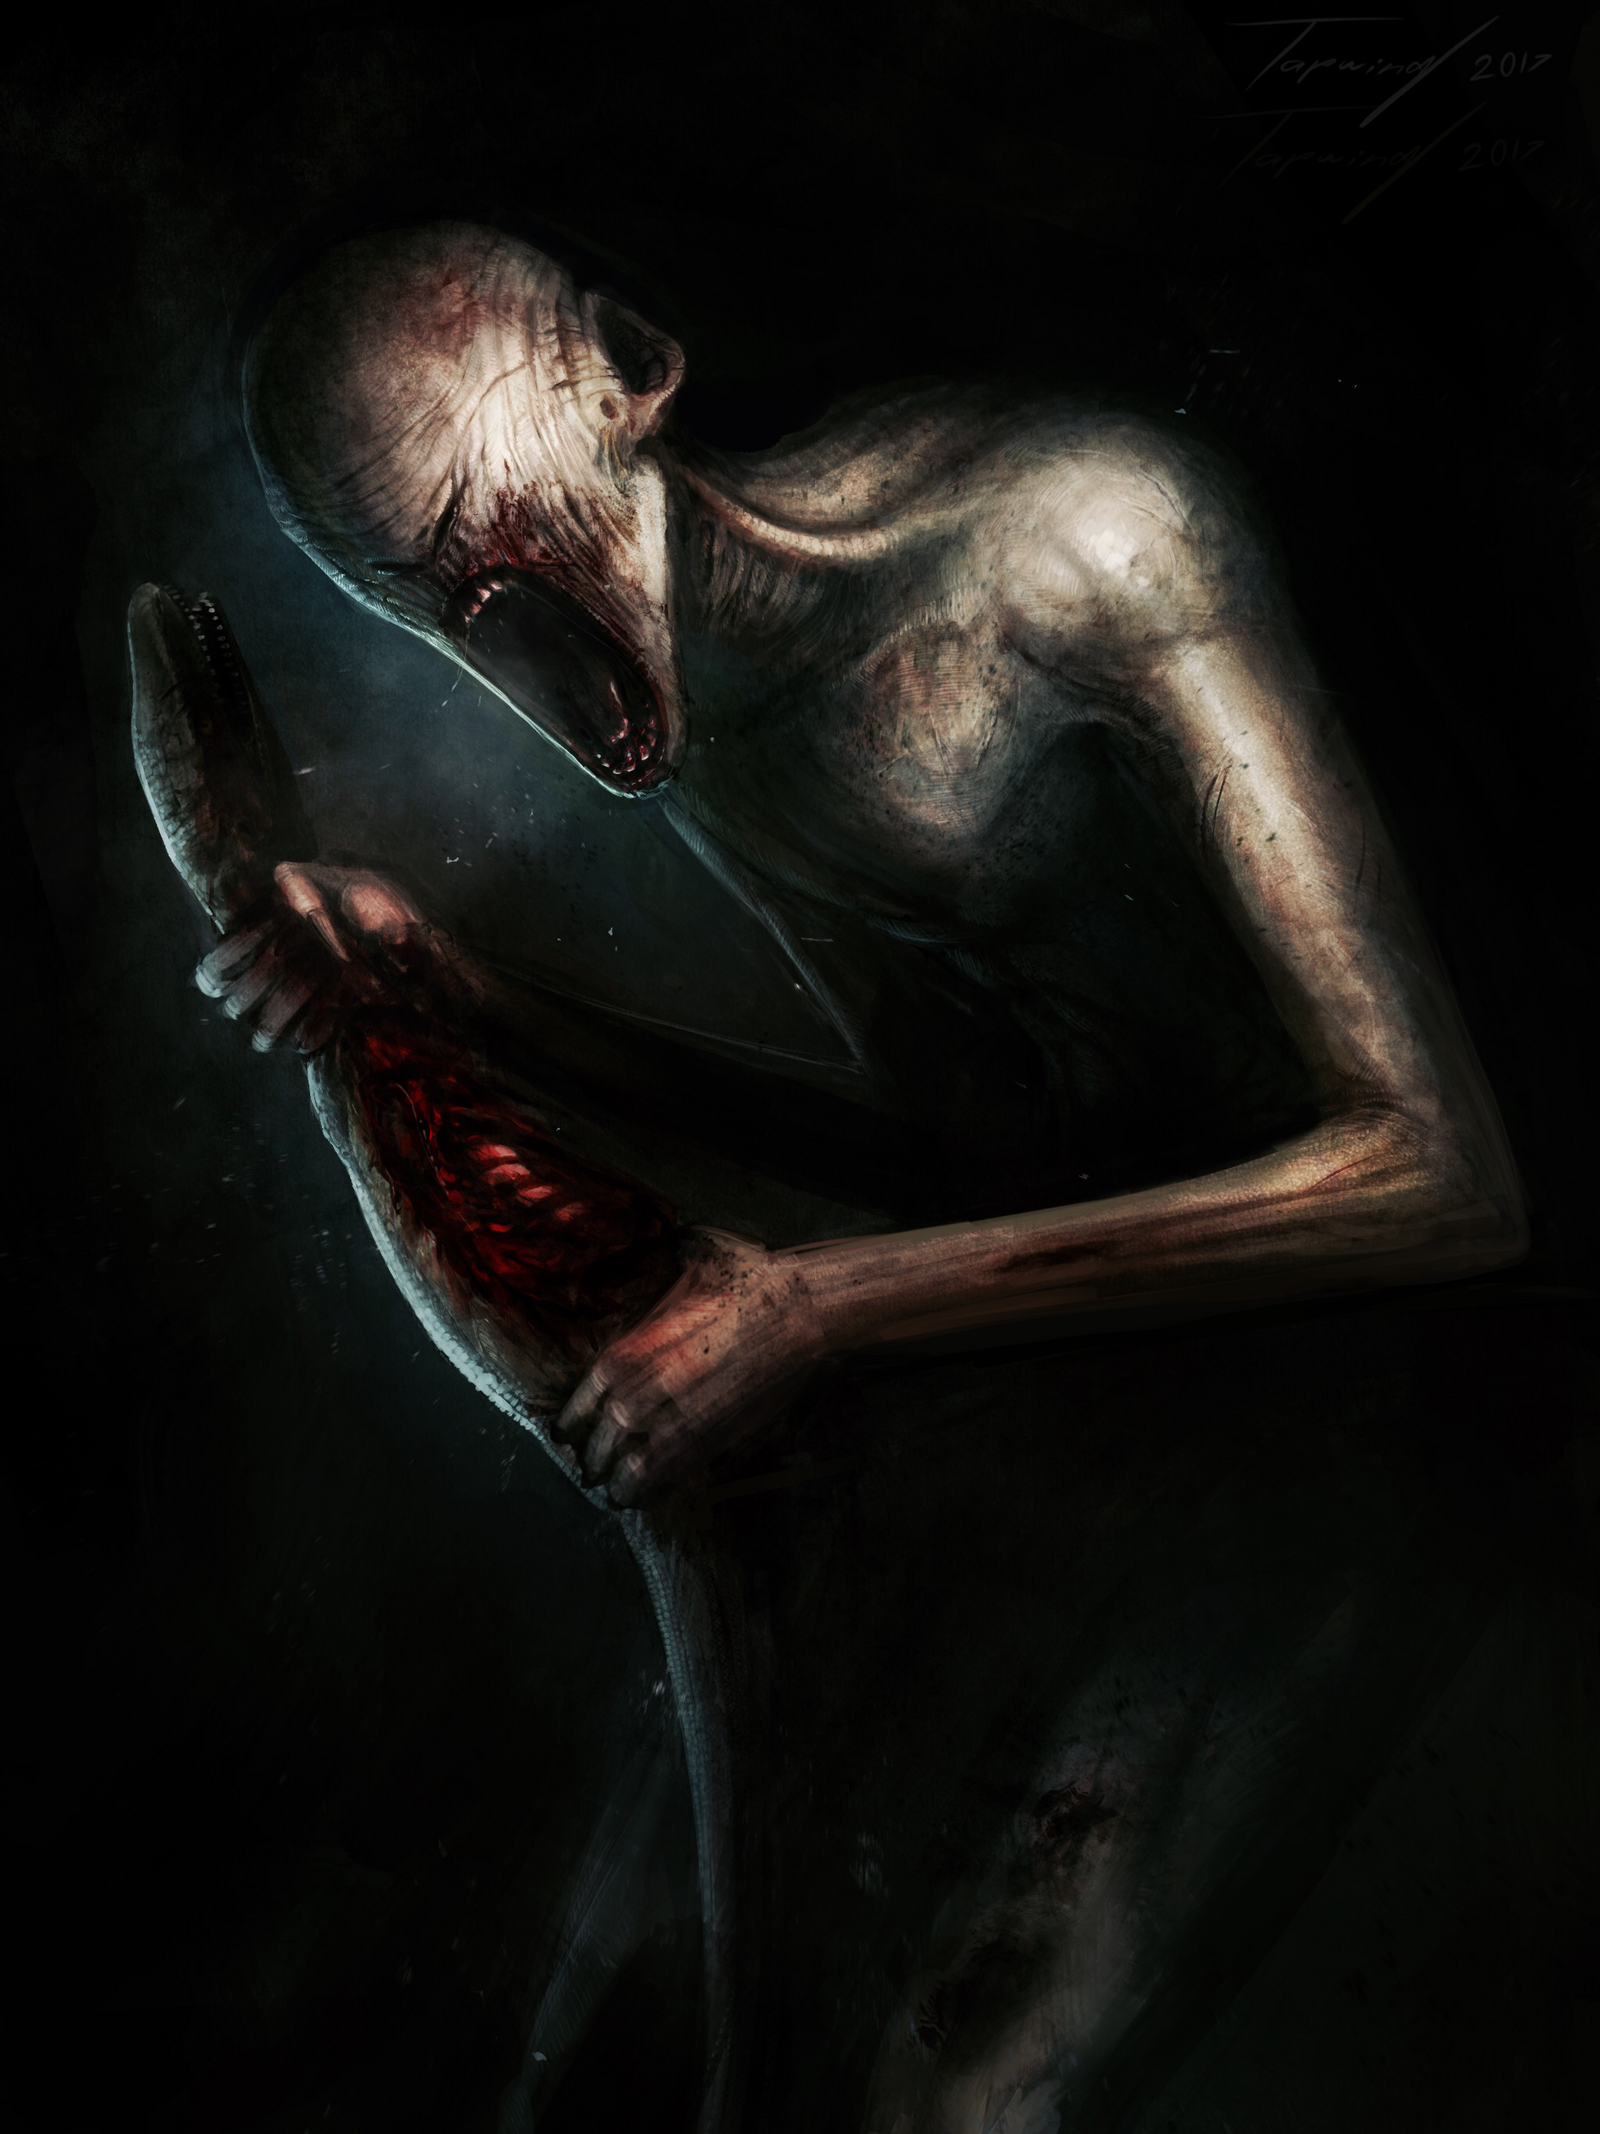 Cannibal by Tapwing